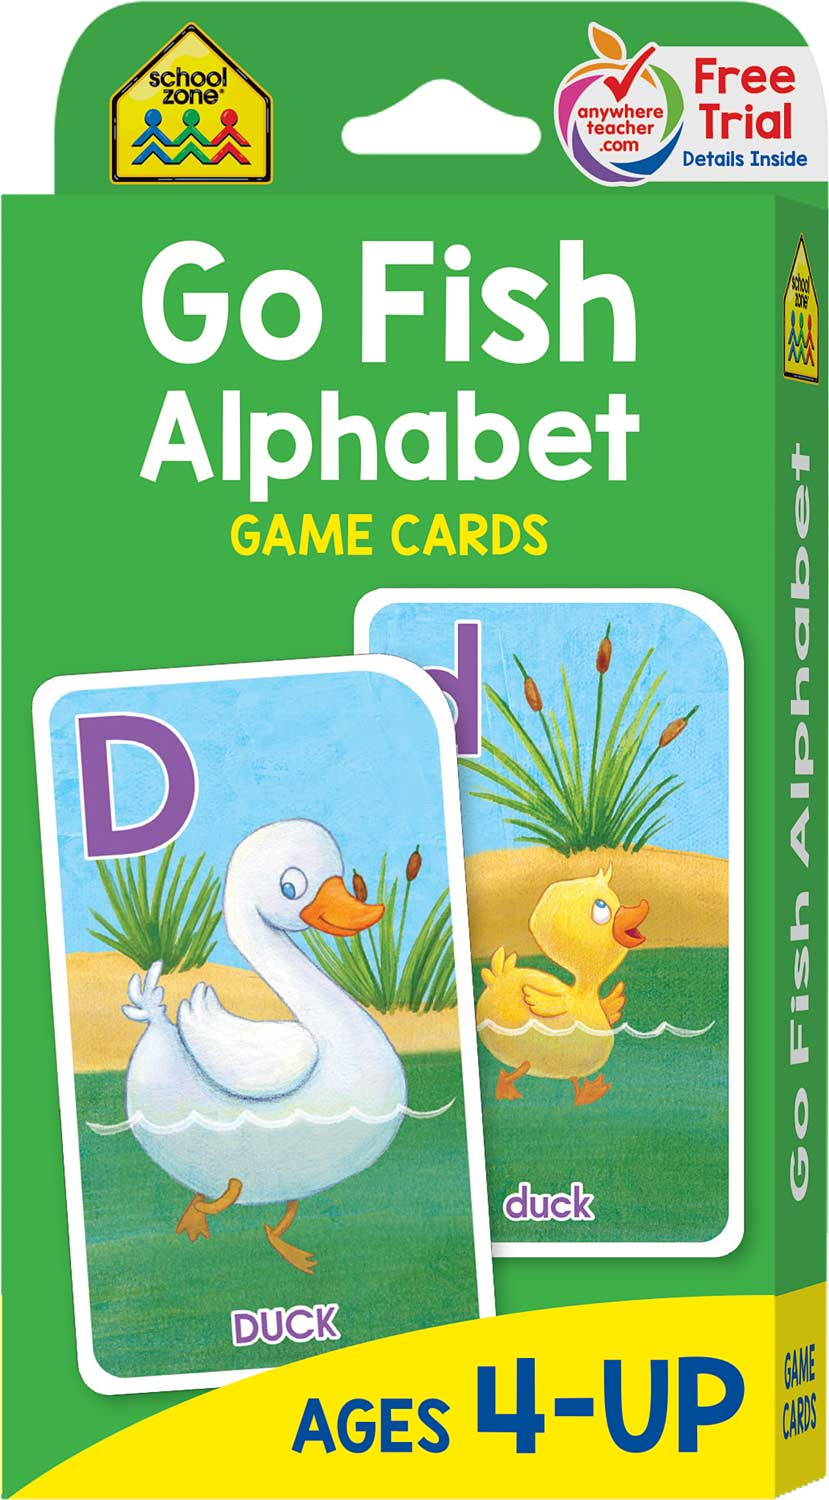 Go fish alphabet game cards kool child for Go fish games